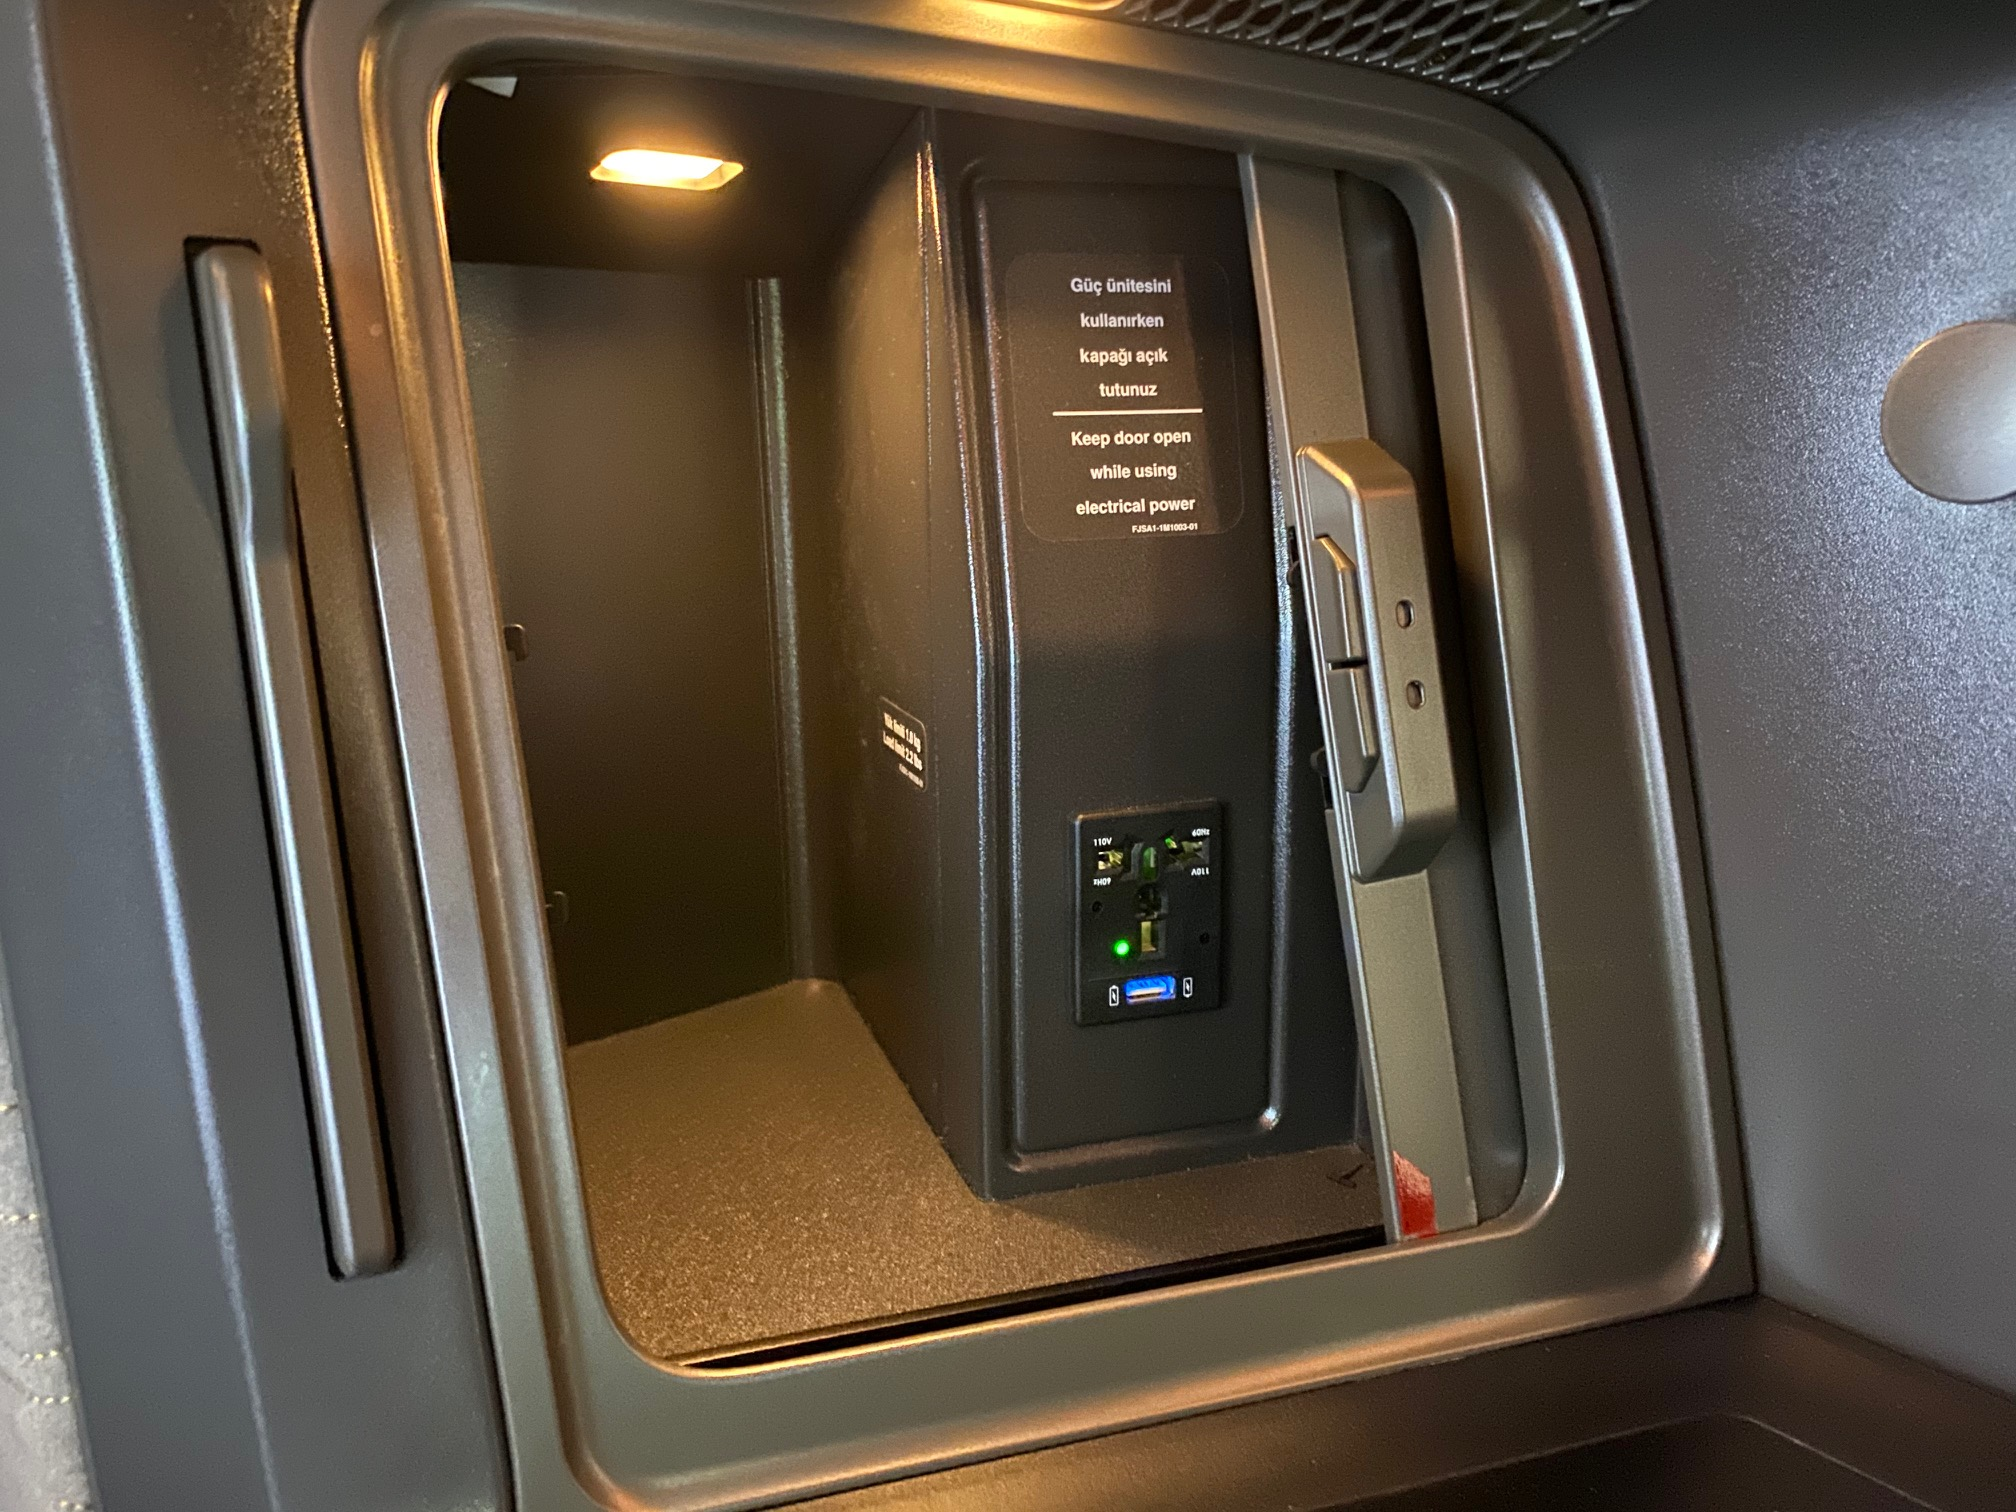 Turkish Airlines 787-9 Business Class Seat Storage Space and A/C & USB Power